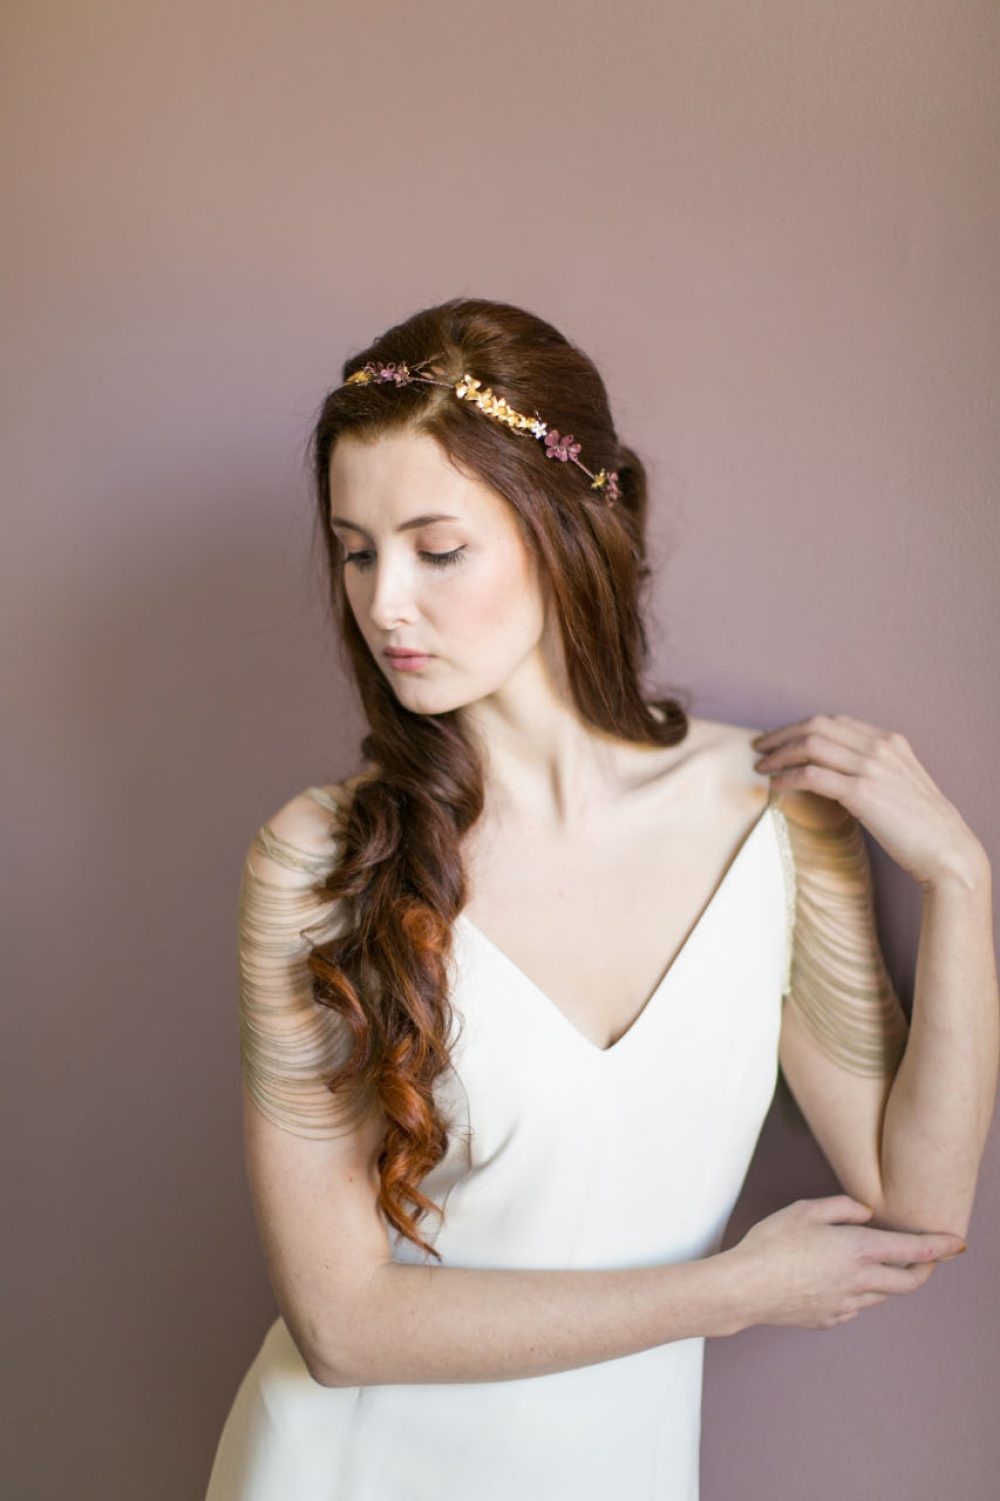 victoria-millesime-odette-gold-orchid-bridal-crown, Image by Anneli Marinovich